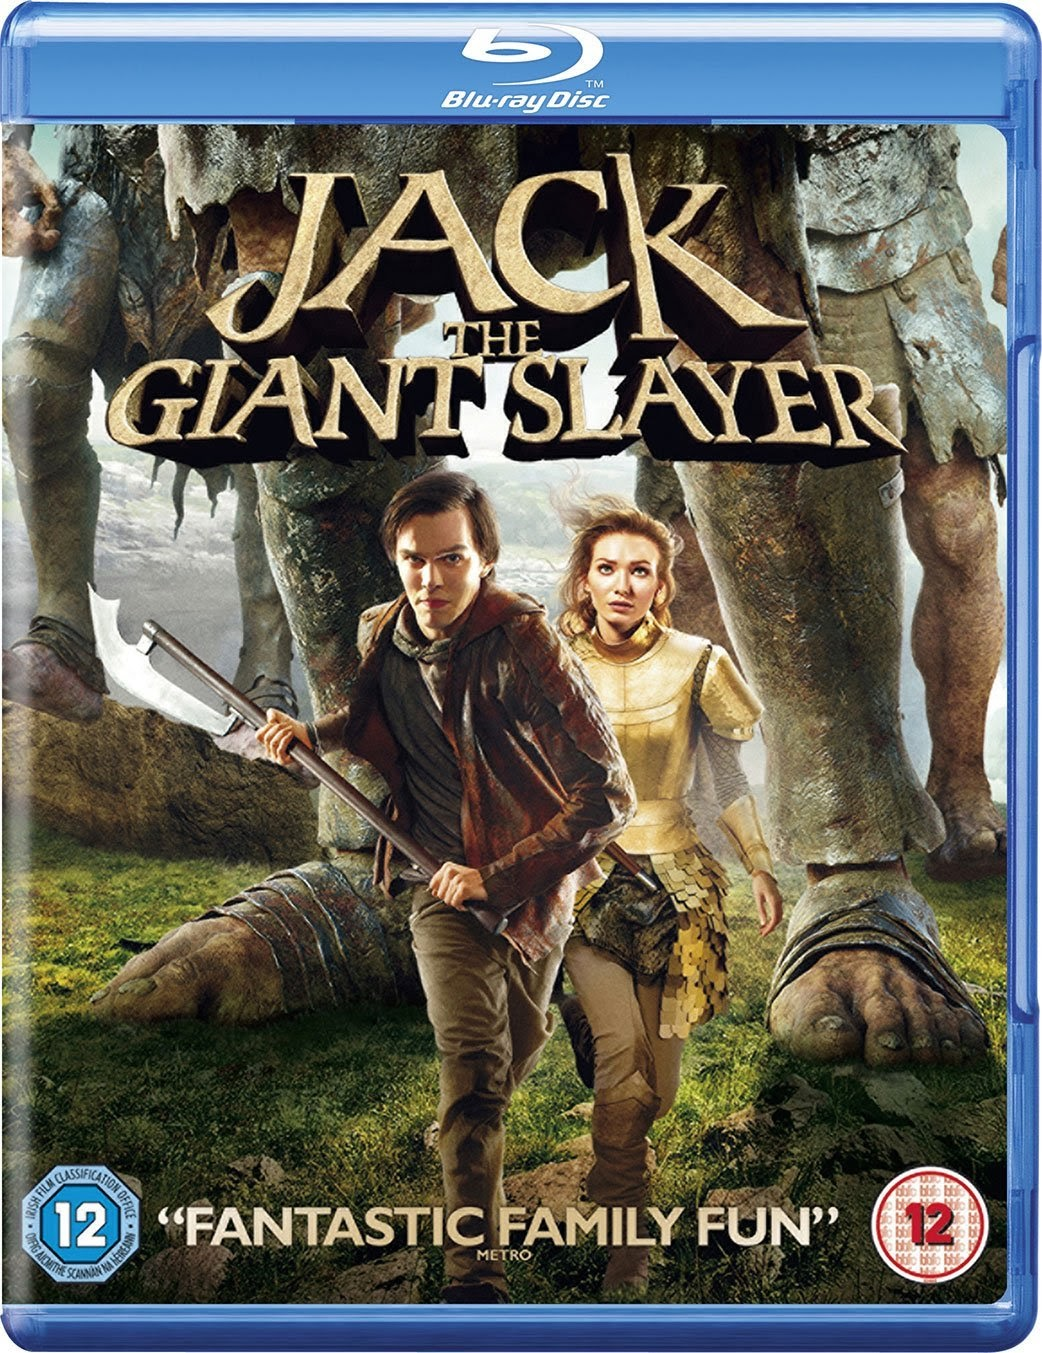 Jack The Giant Slayer (2013) 720p Bluray 799MB scOrp